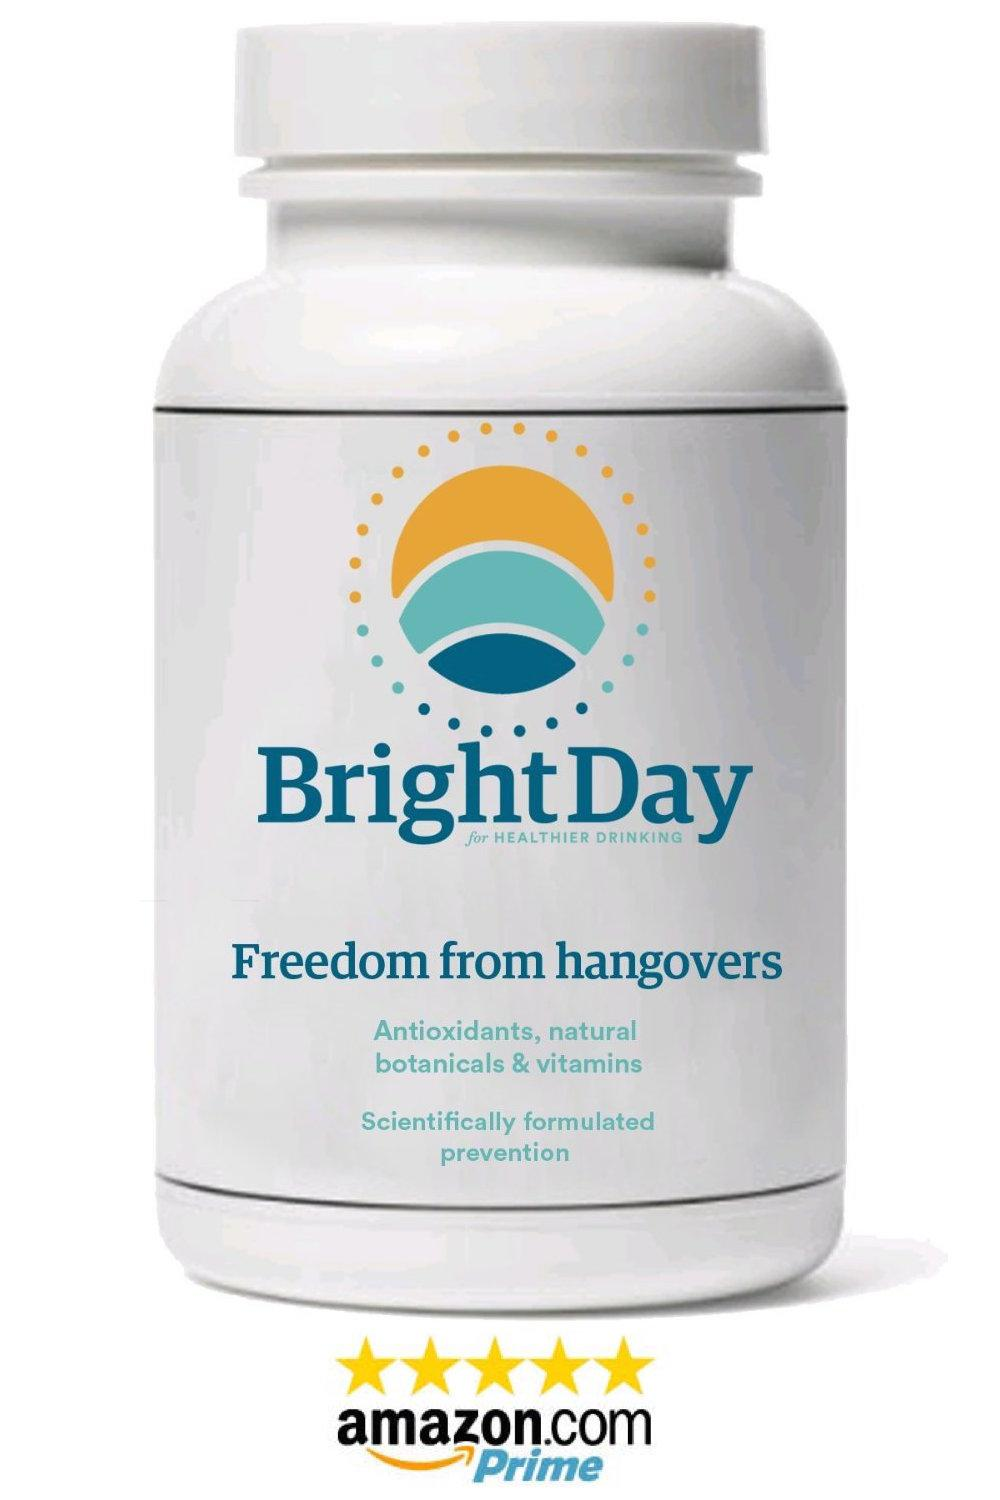 BrightDay Hangover Prevention - 1 bottle